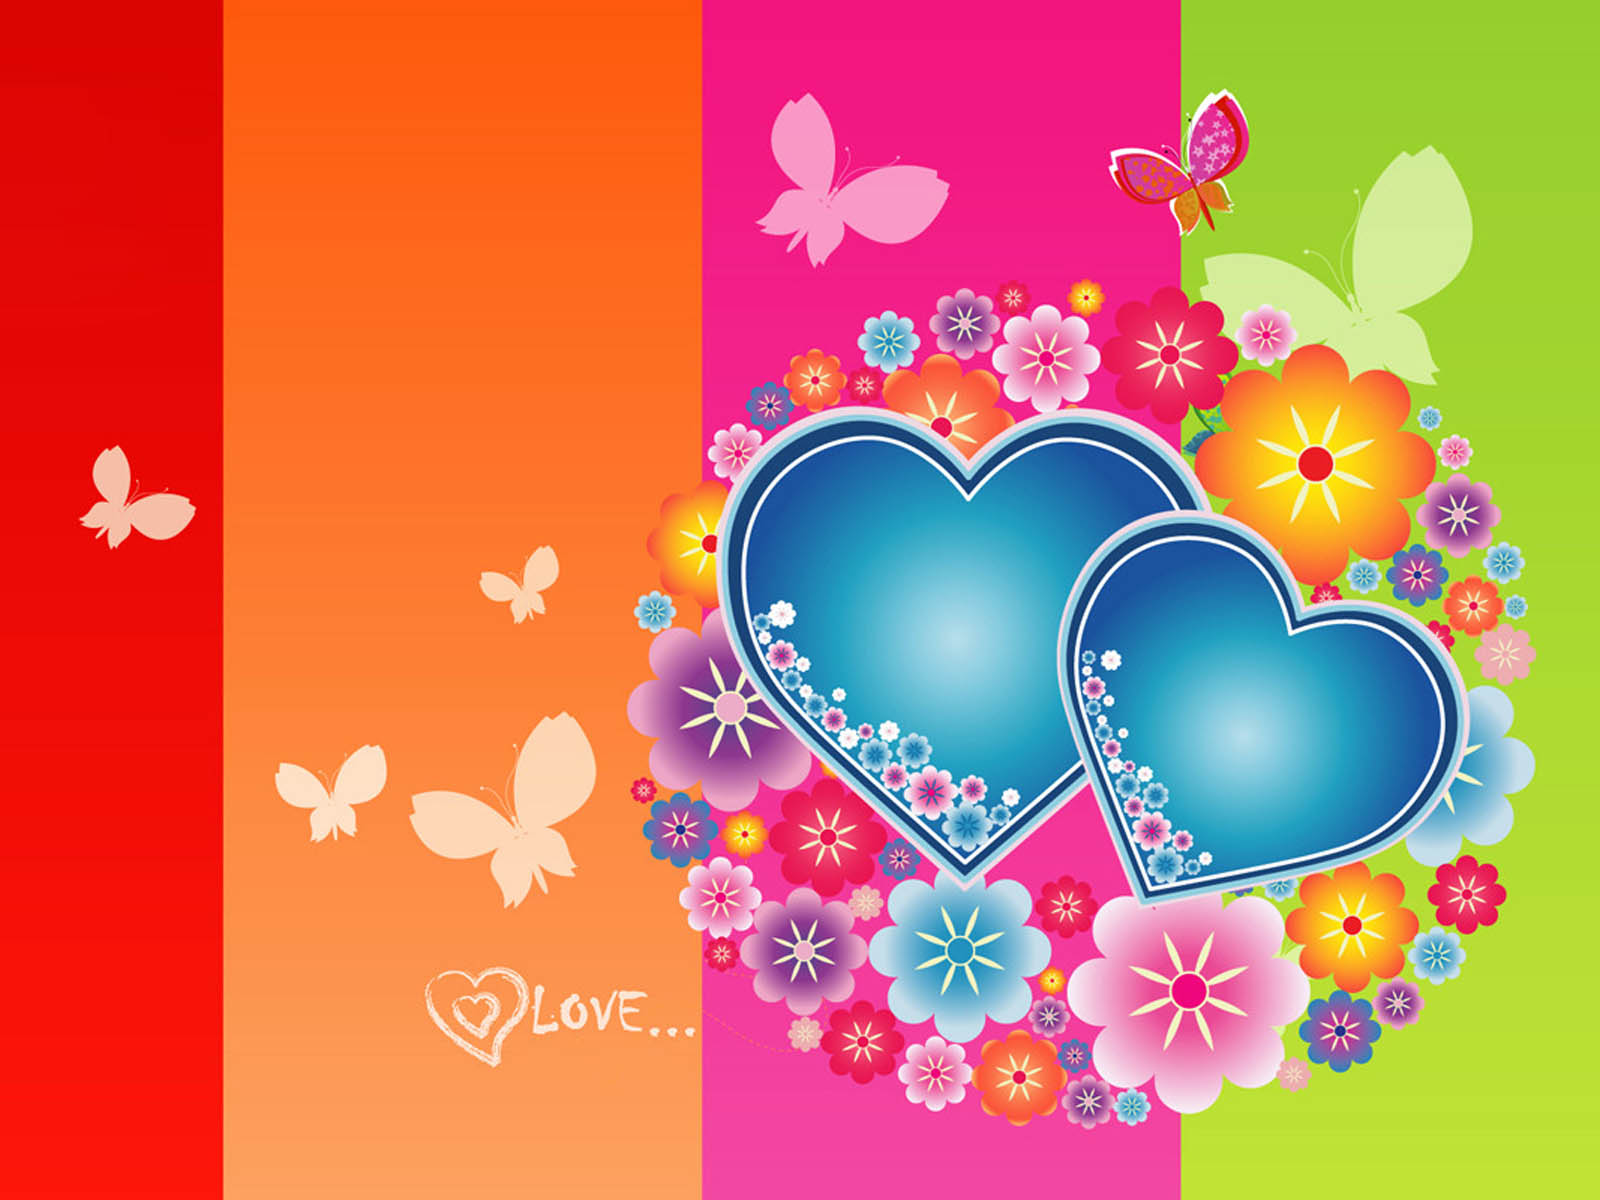 Love Heart Wallpaper Designs : wallpapers: Love Heart Wallpapers